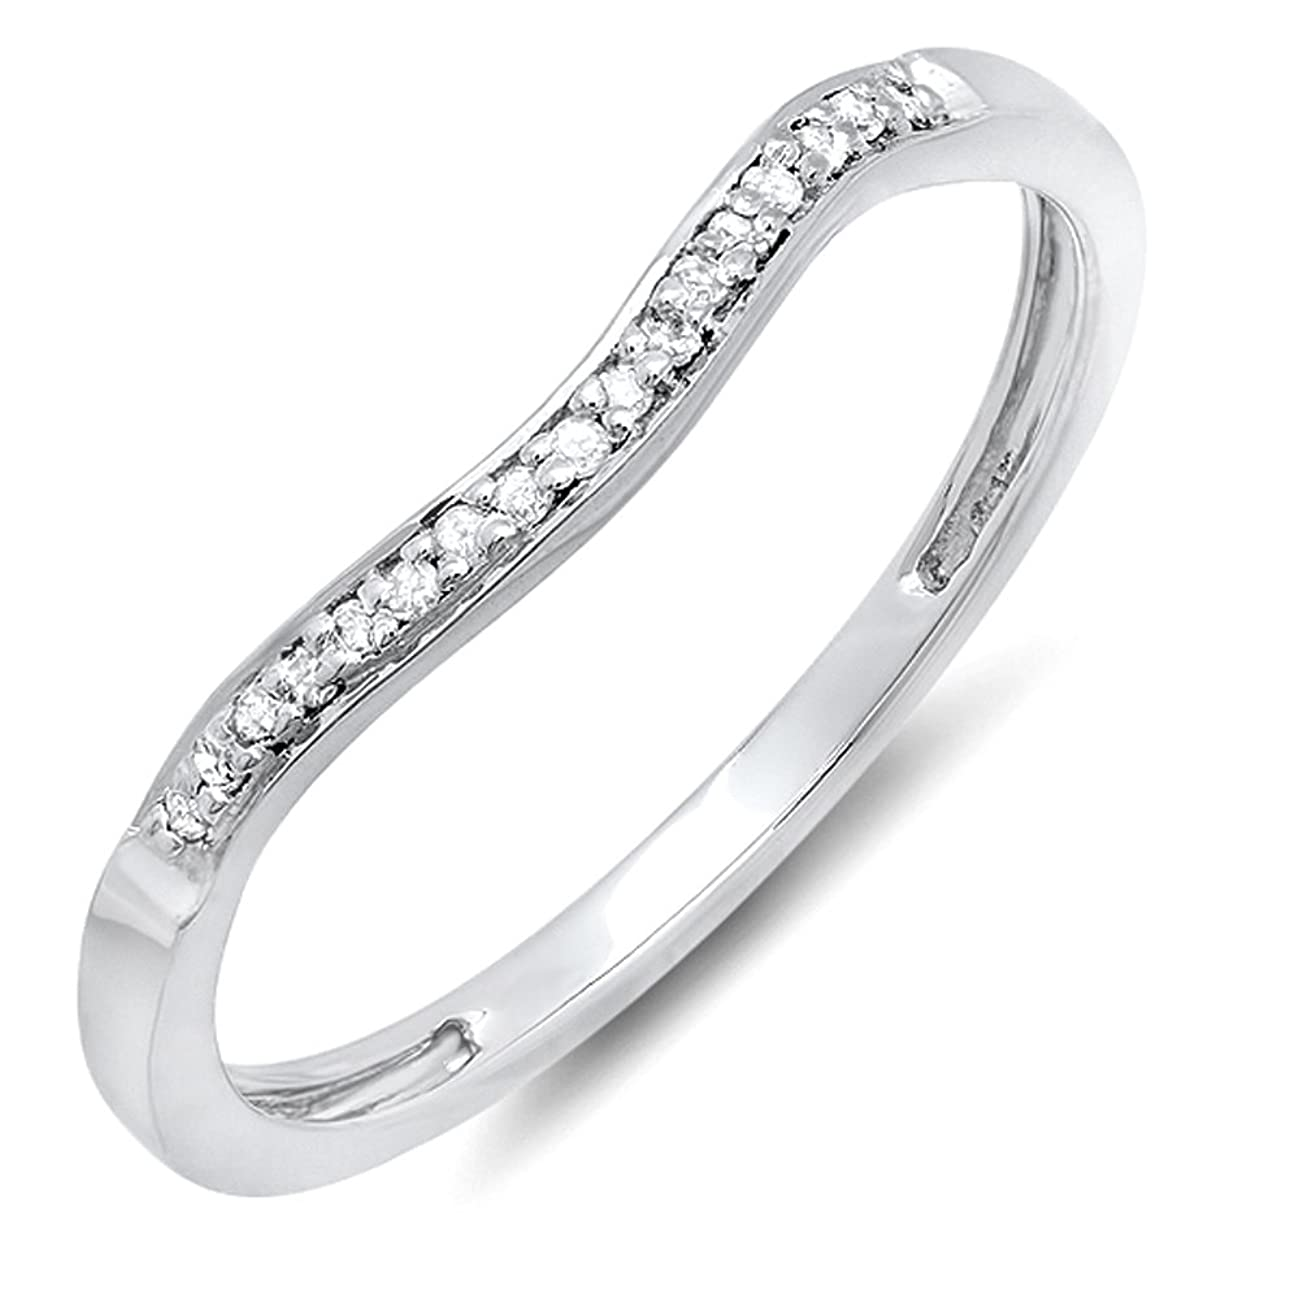 Dazzlingrock Collection 0.10 Carat (ctw) Round Diamond Ladies Anniversary Wedding Band Guard Ring 1/10 CT, Sterling Silver